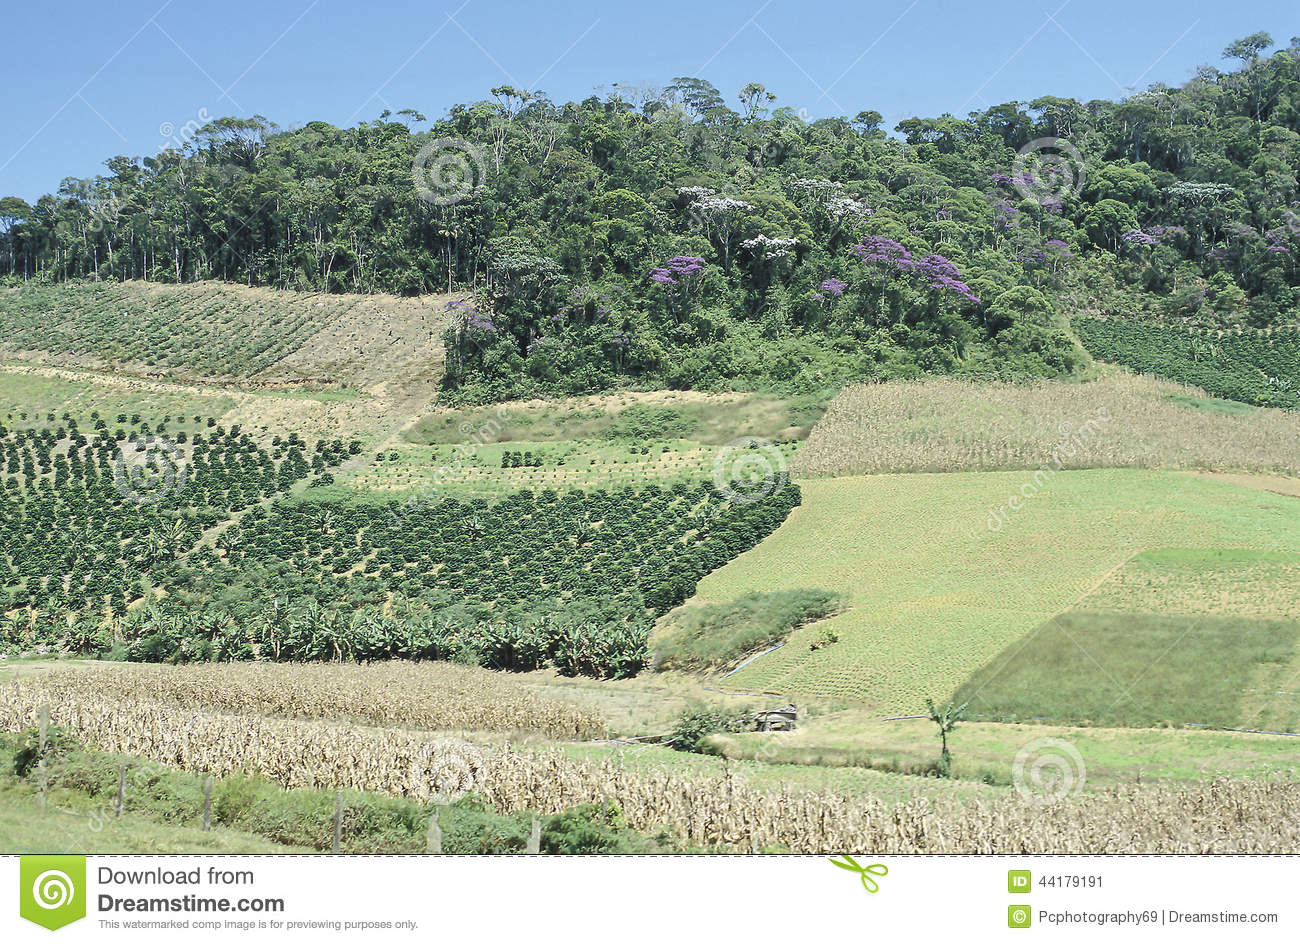 Cultivated fields and deforestation in southern Brazil.